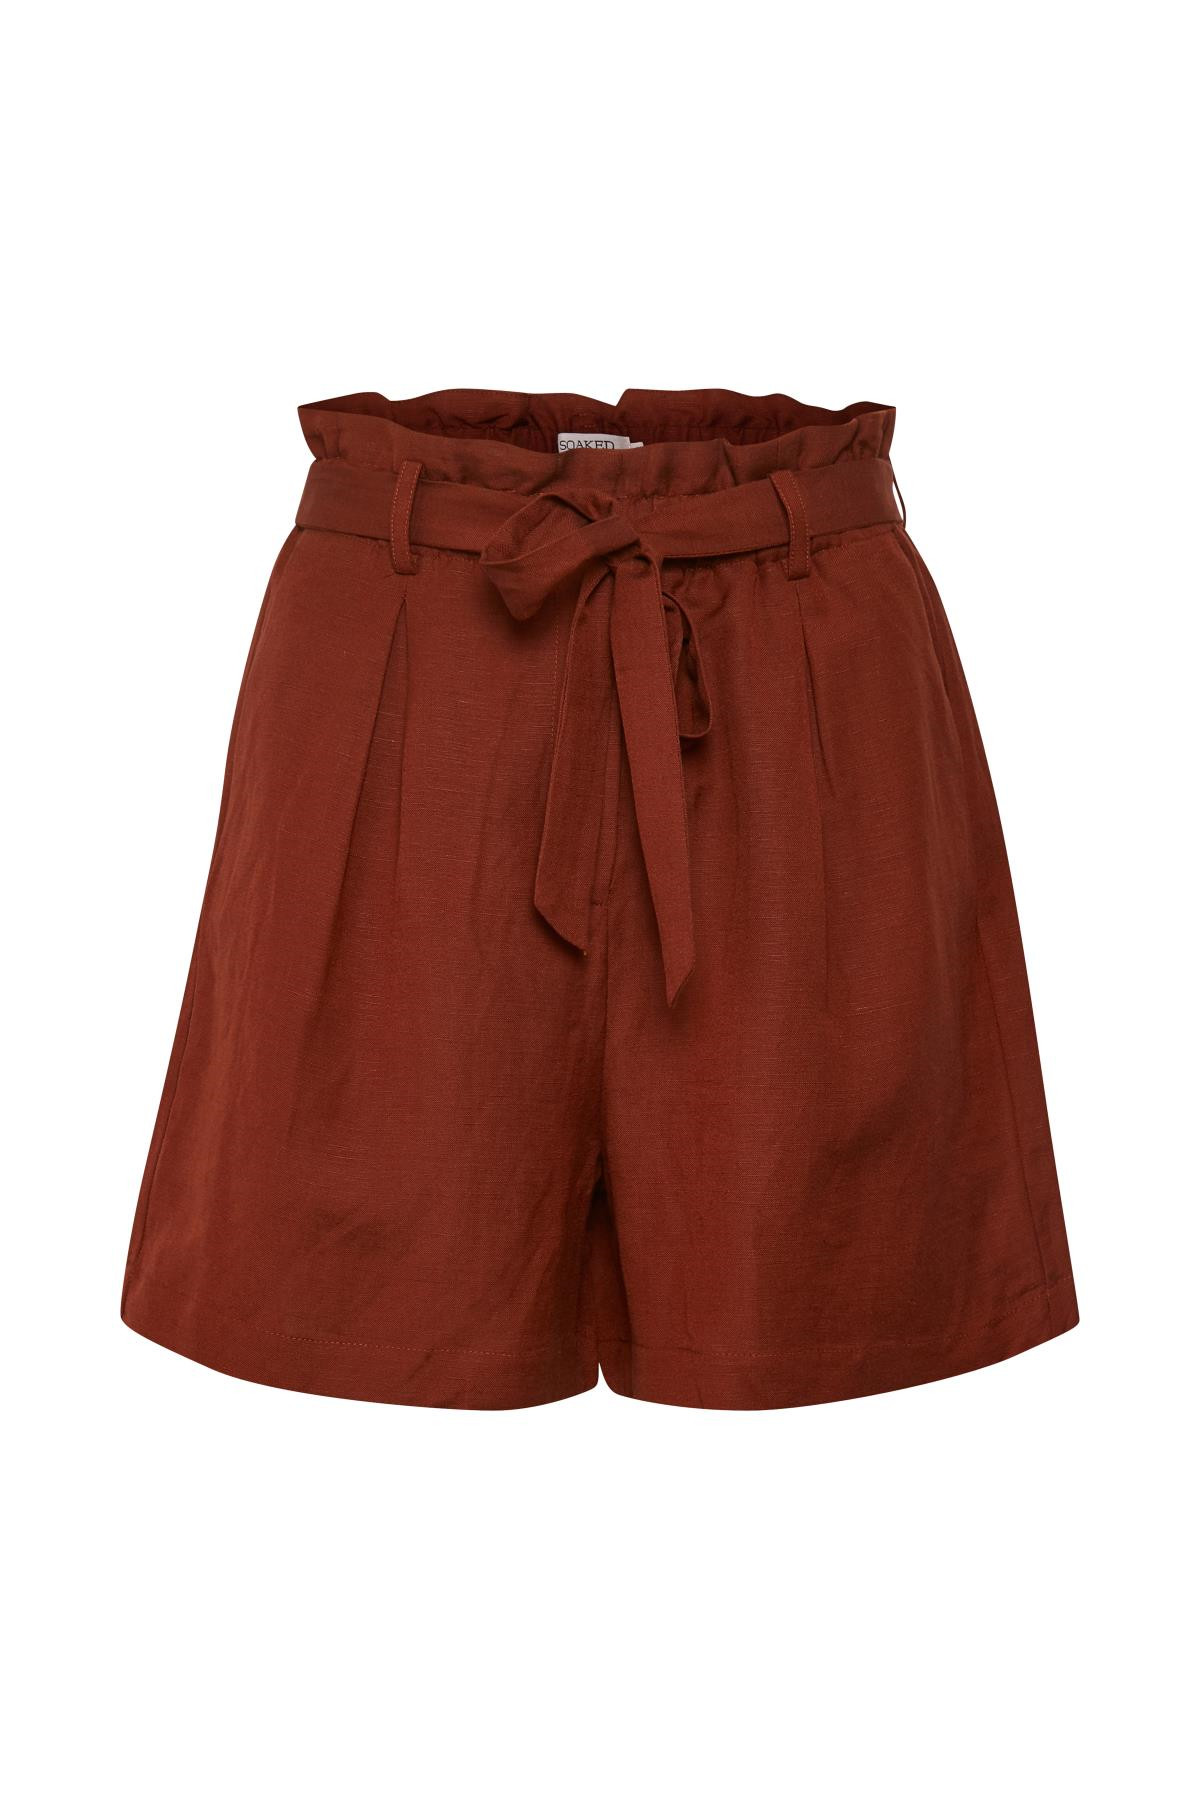 Image of   SOAKED IN LUXURY SL FAYETTE SHORTS 30404040 (Fired Brick 47021, S)